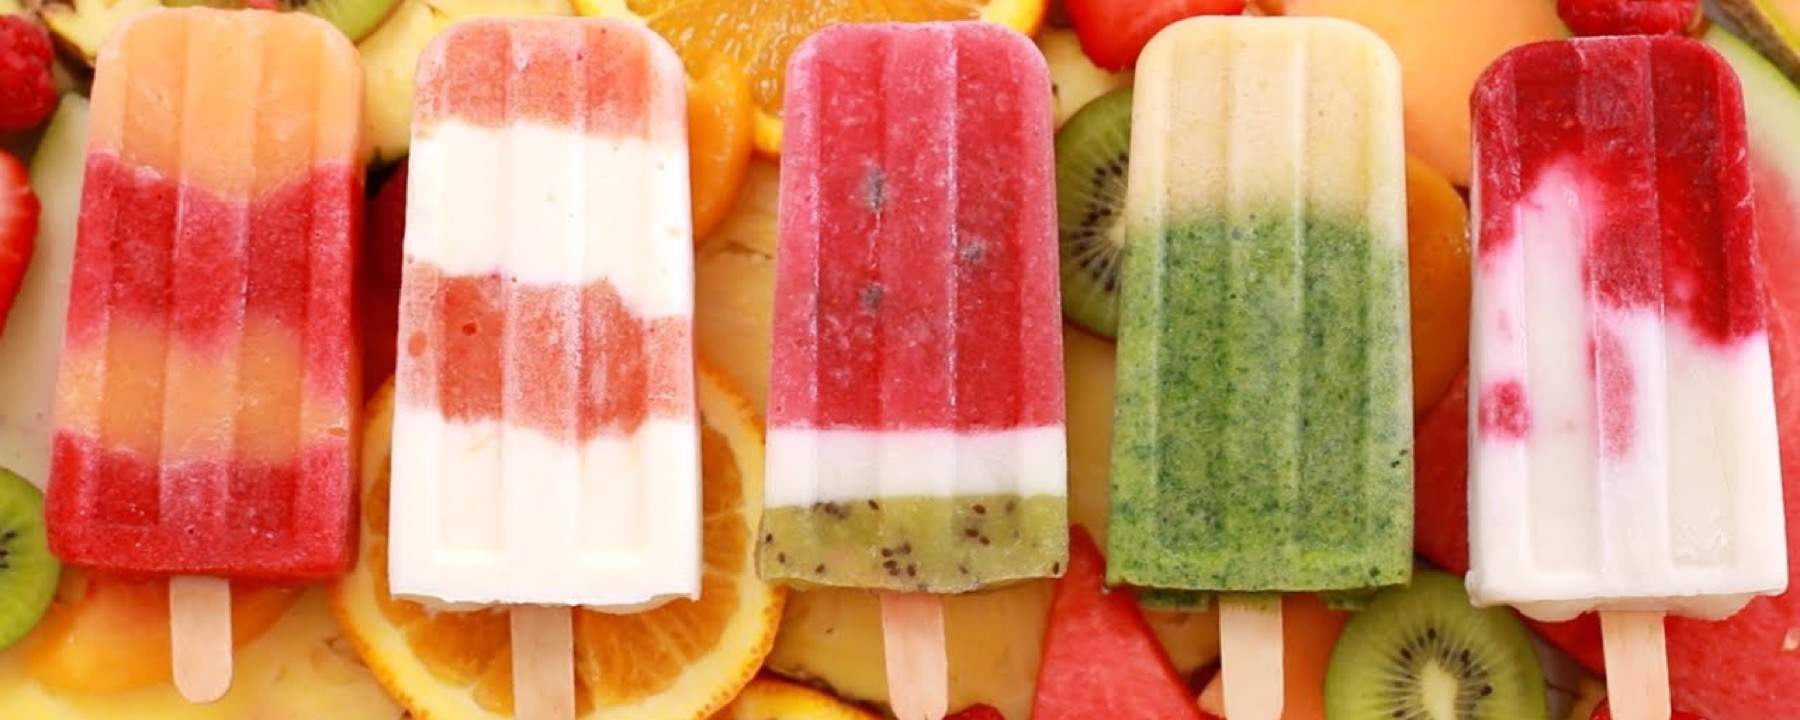 Image result for post run popsicle